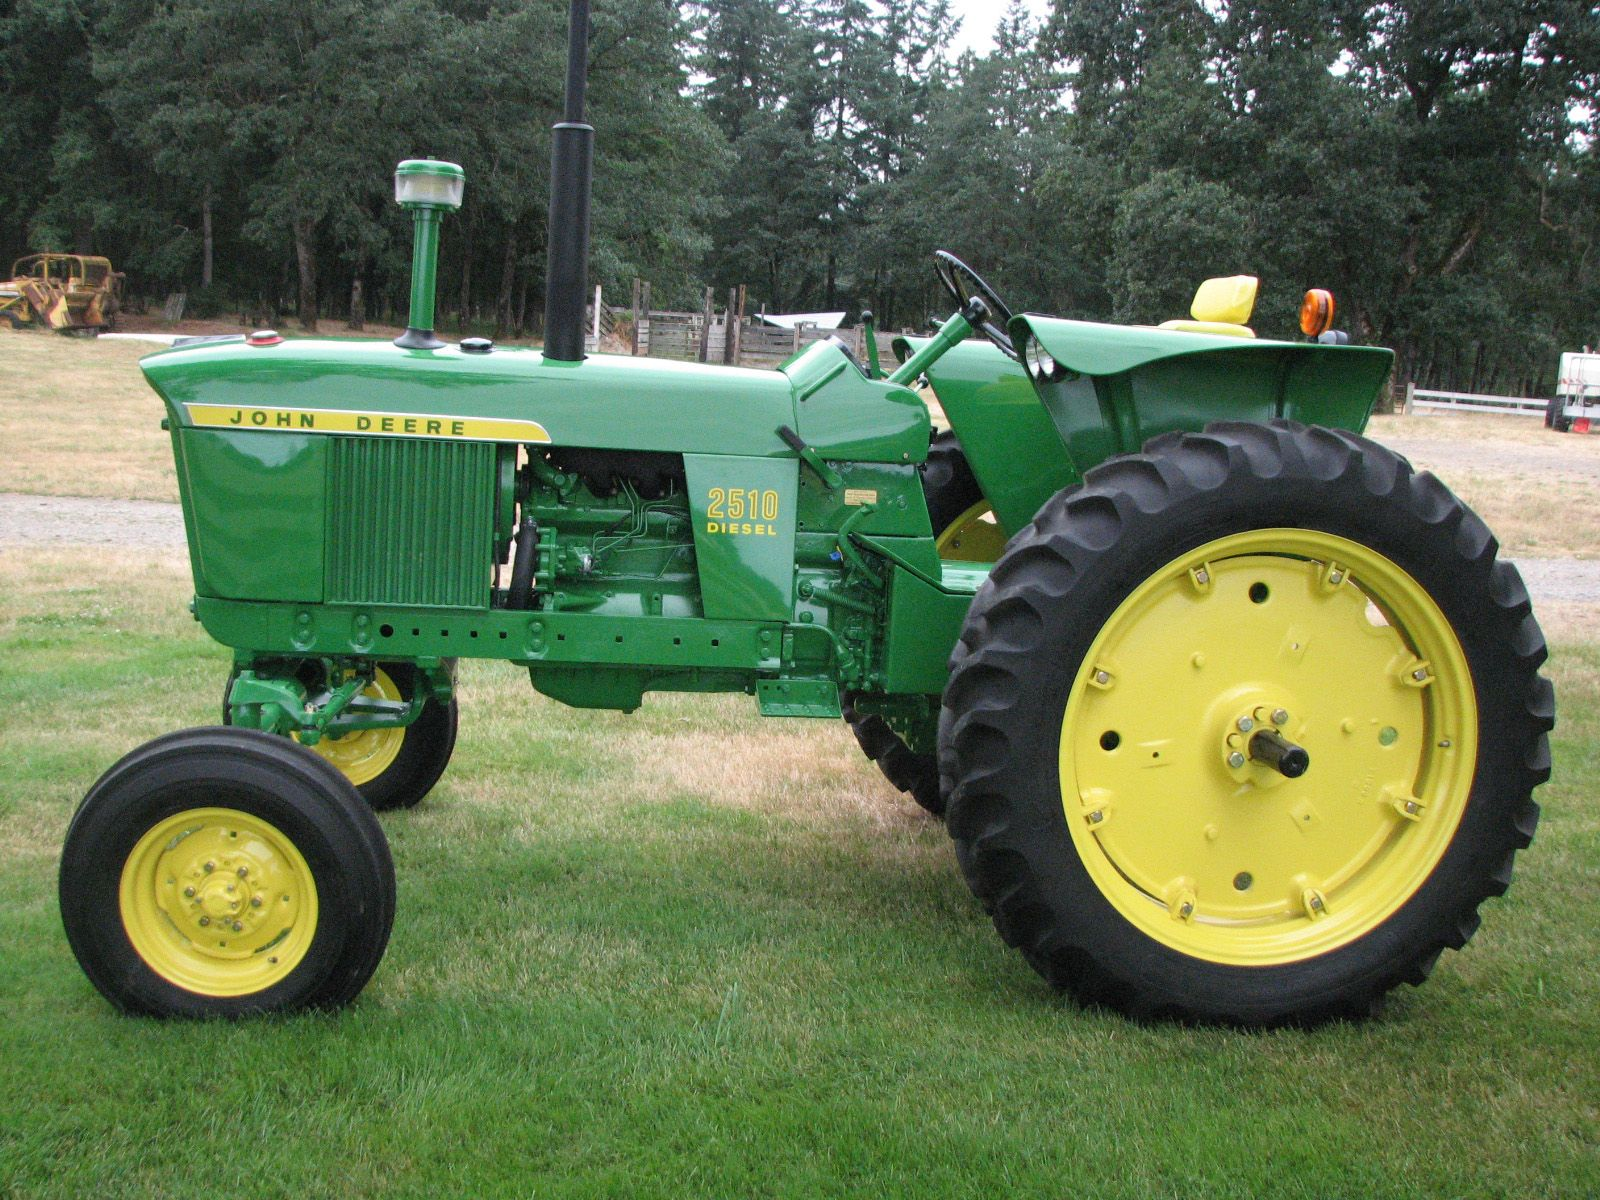 2510 John Deere | Antique Tractors | Pinterest